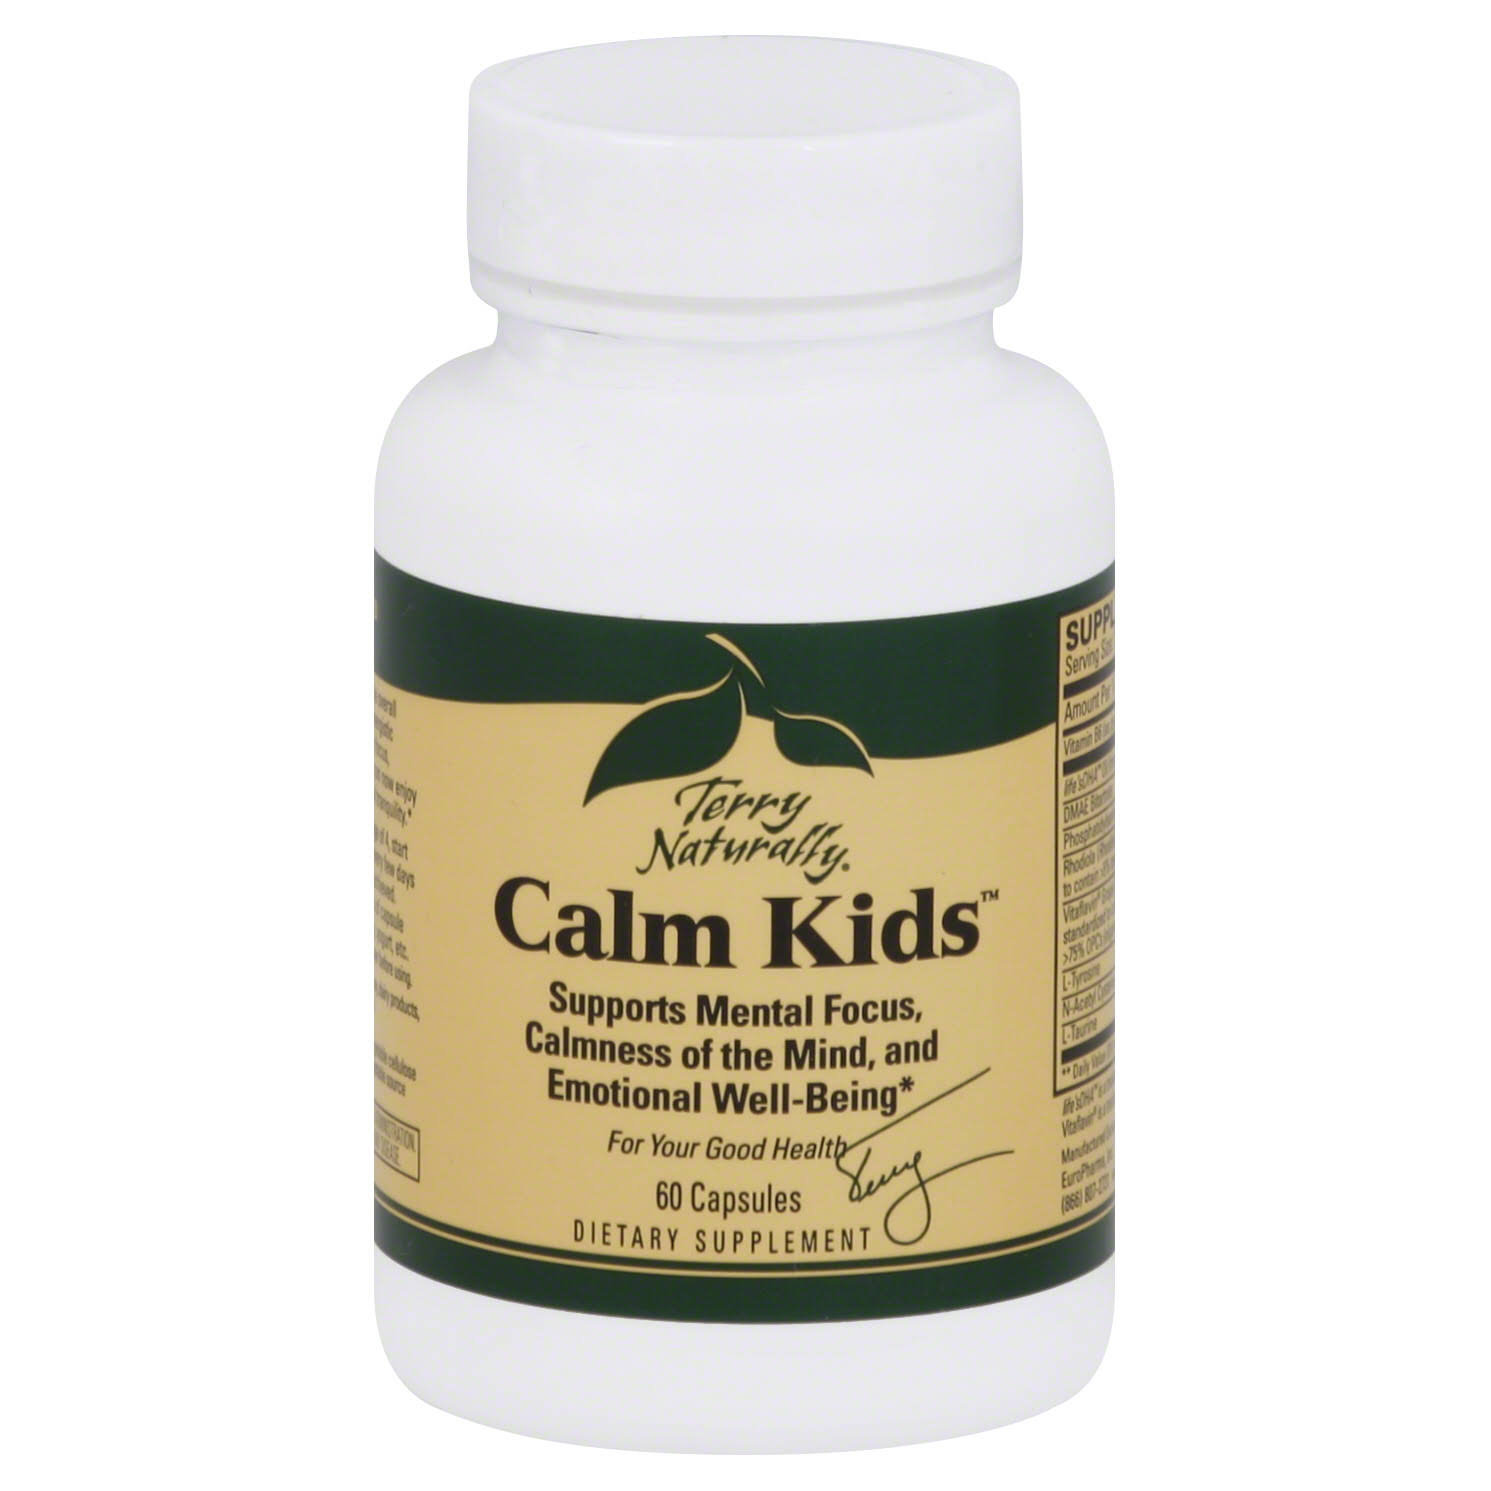 Terry Naturally Calm Kids, Capsules - 60 capsules